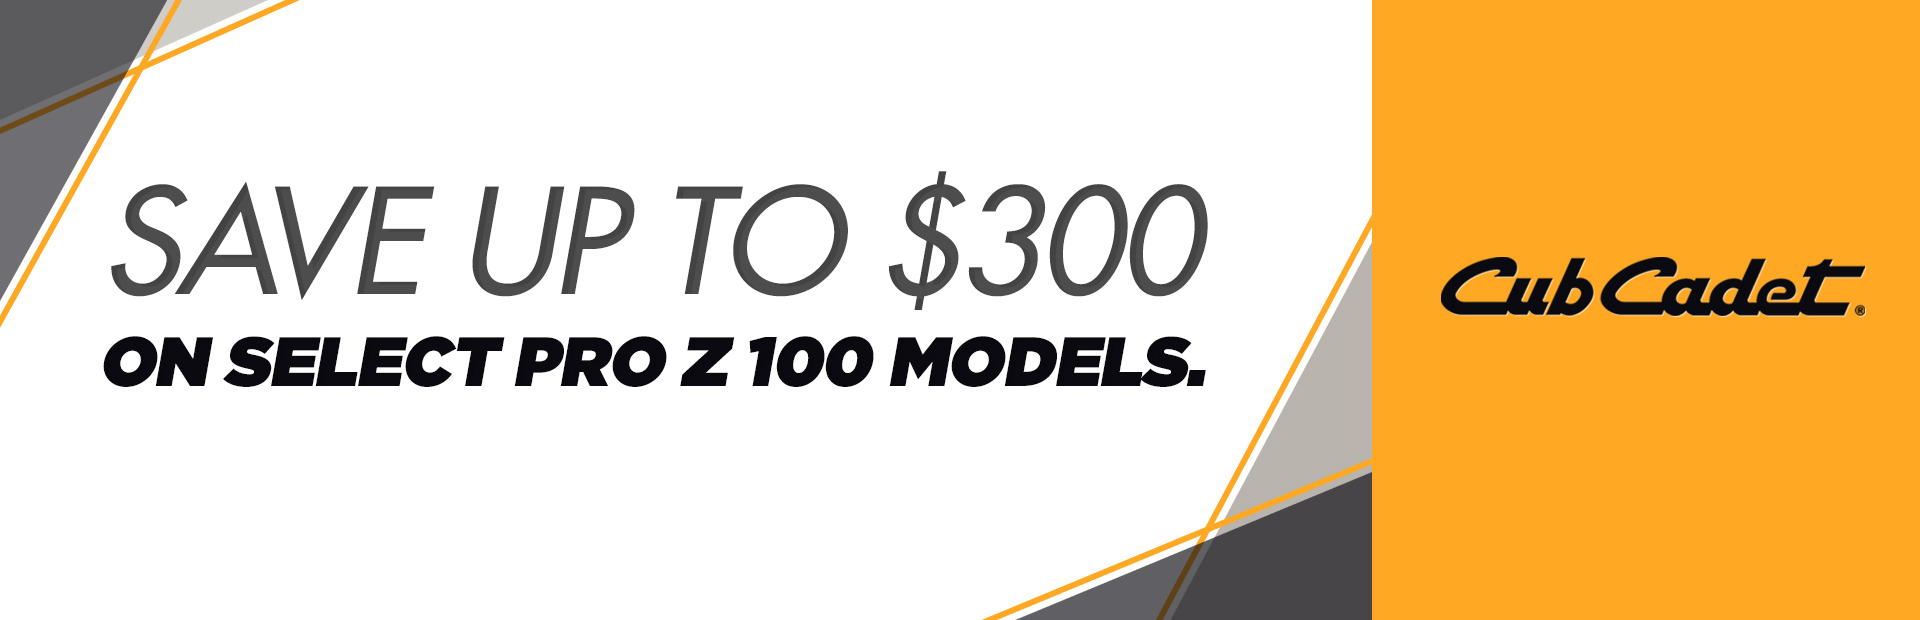 Cub Cadet: Save up to $300 on Select PRO Z 100 Models